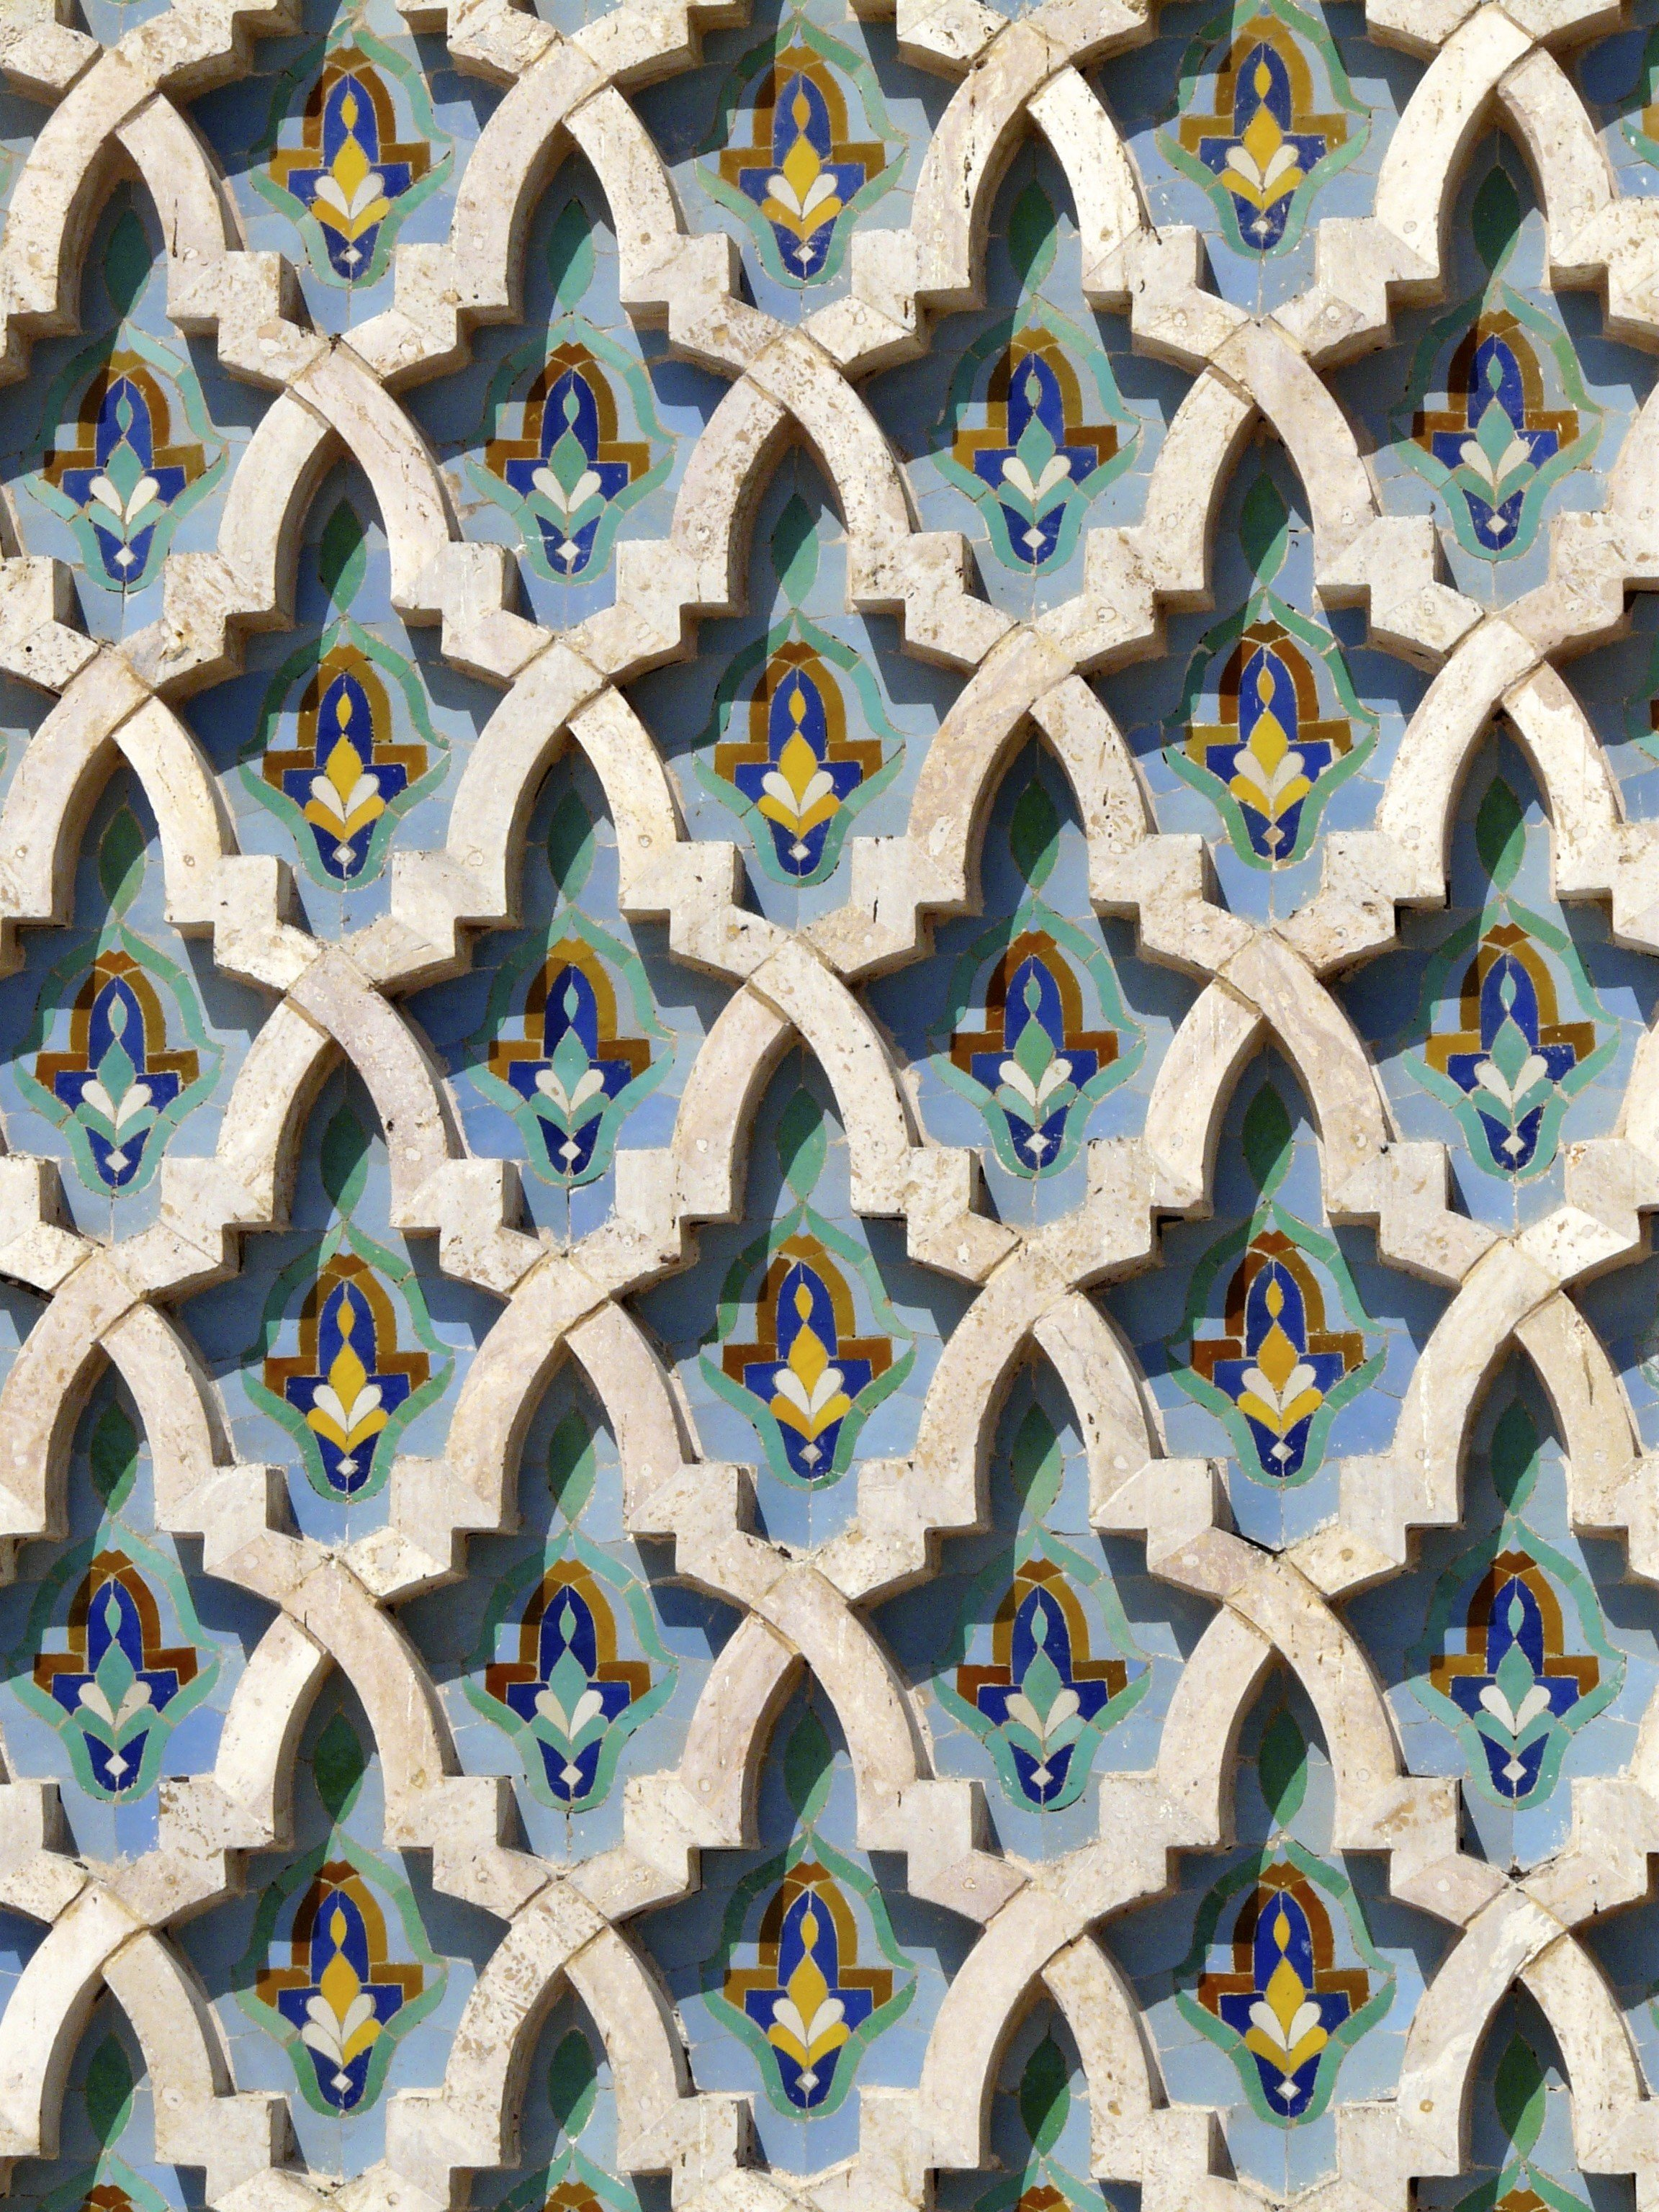 Offbeat blue decorated building pattern art Design circle textile symmetry window material decorative stone